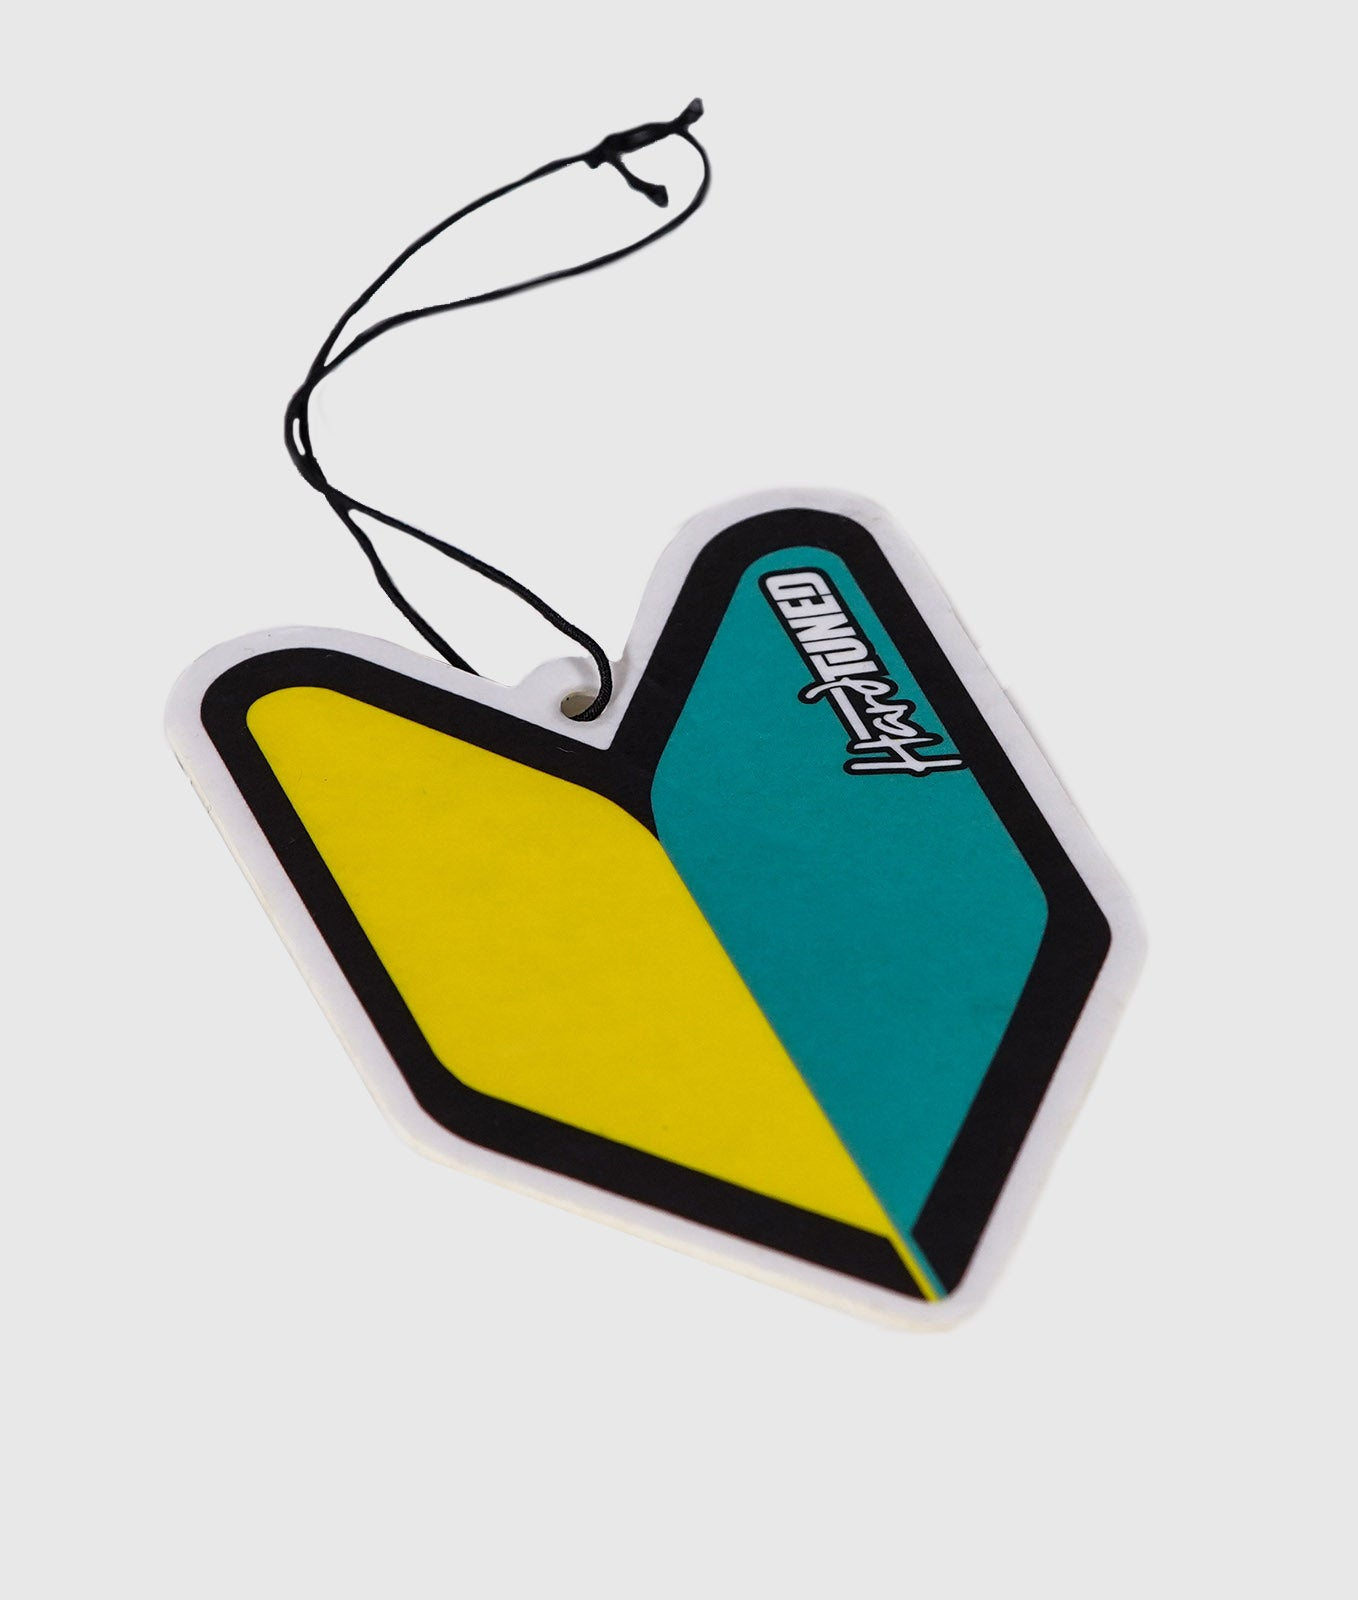 JDM Leaf Air Freshener - Apple